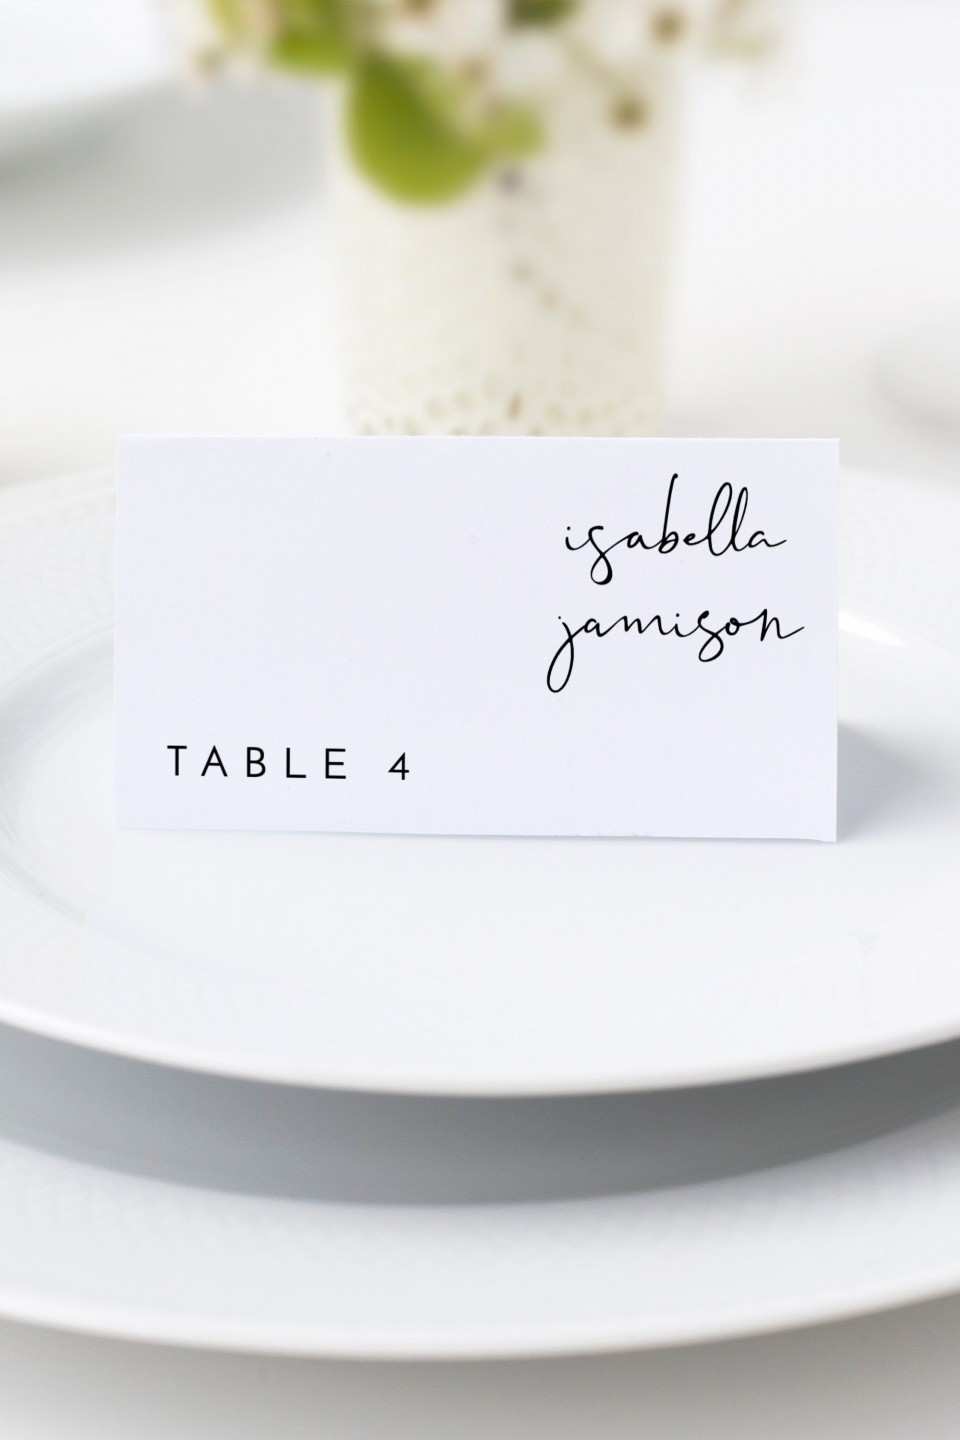 002 Fascinating Wedding Name Card Template Picture  Free Download Design Sticker Format960